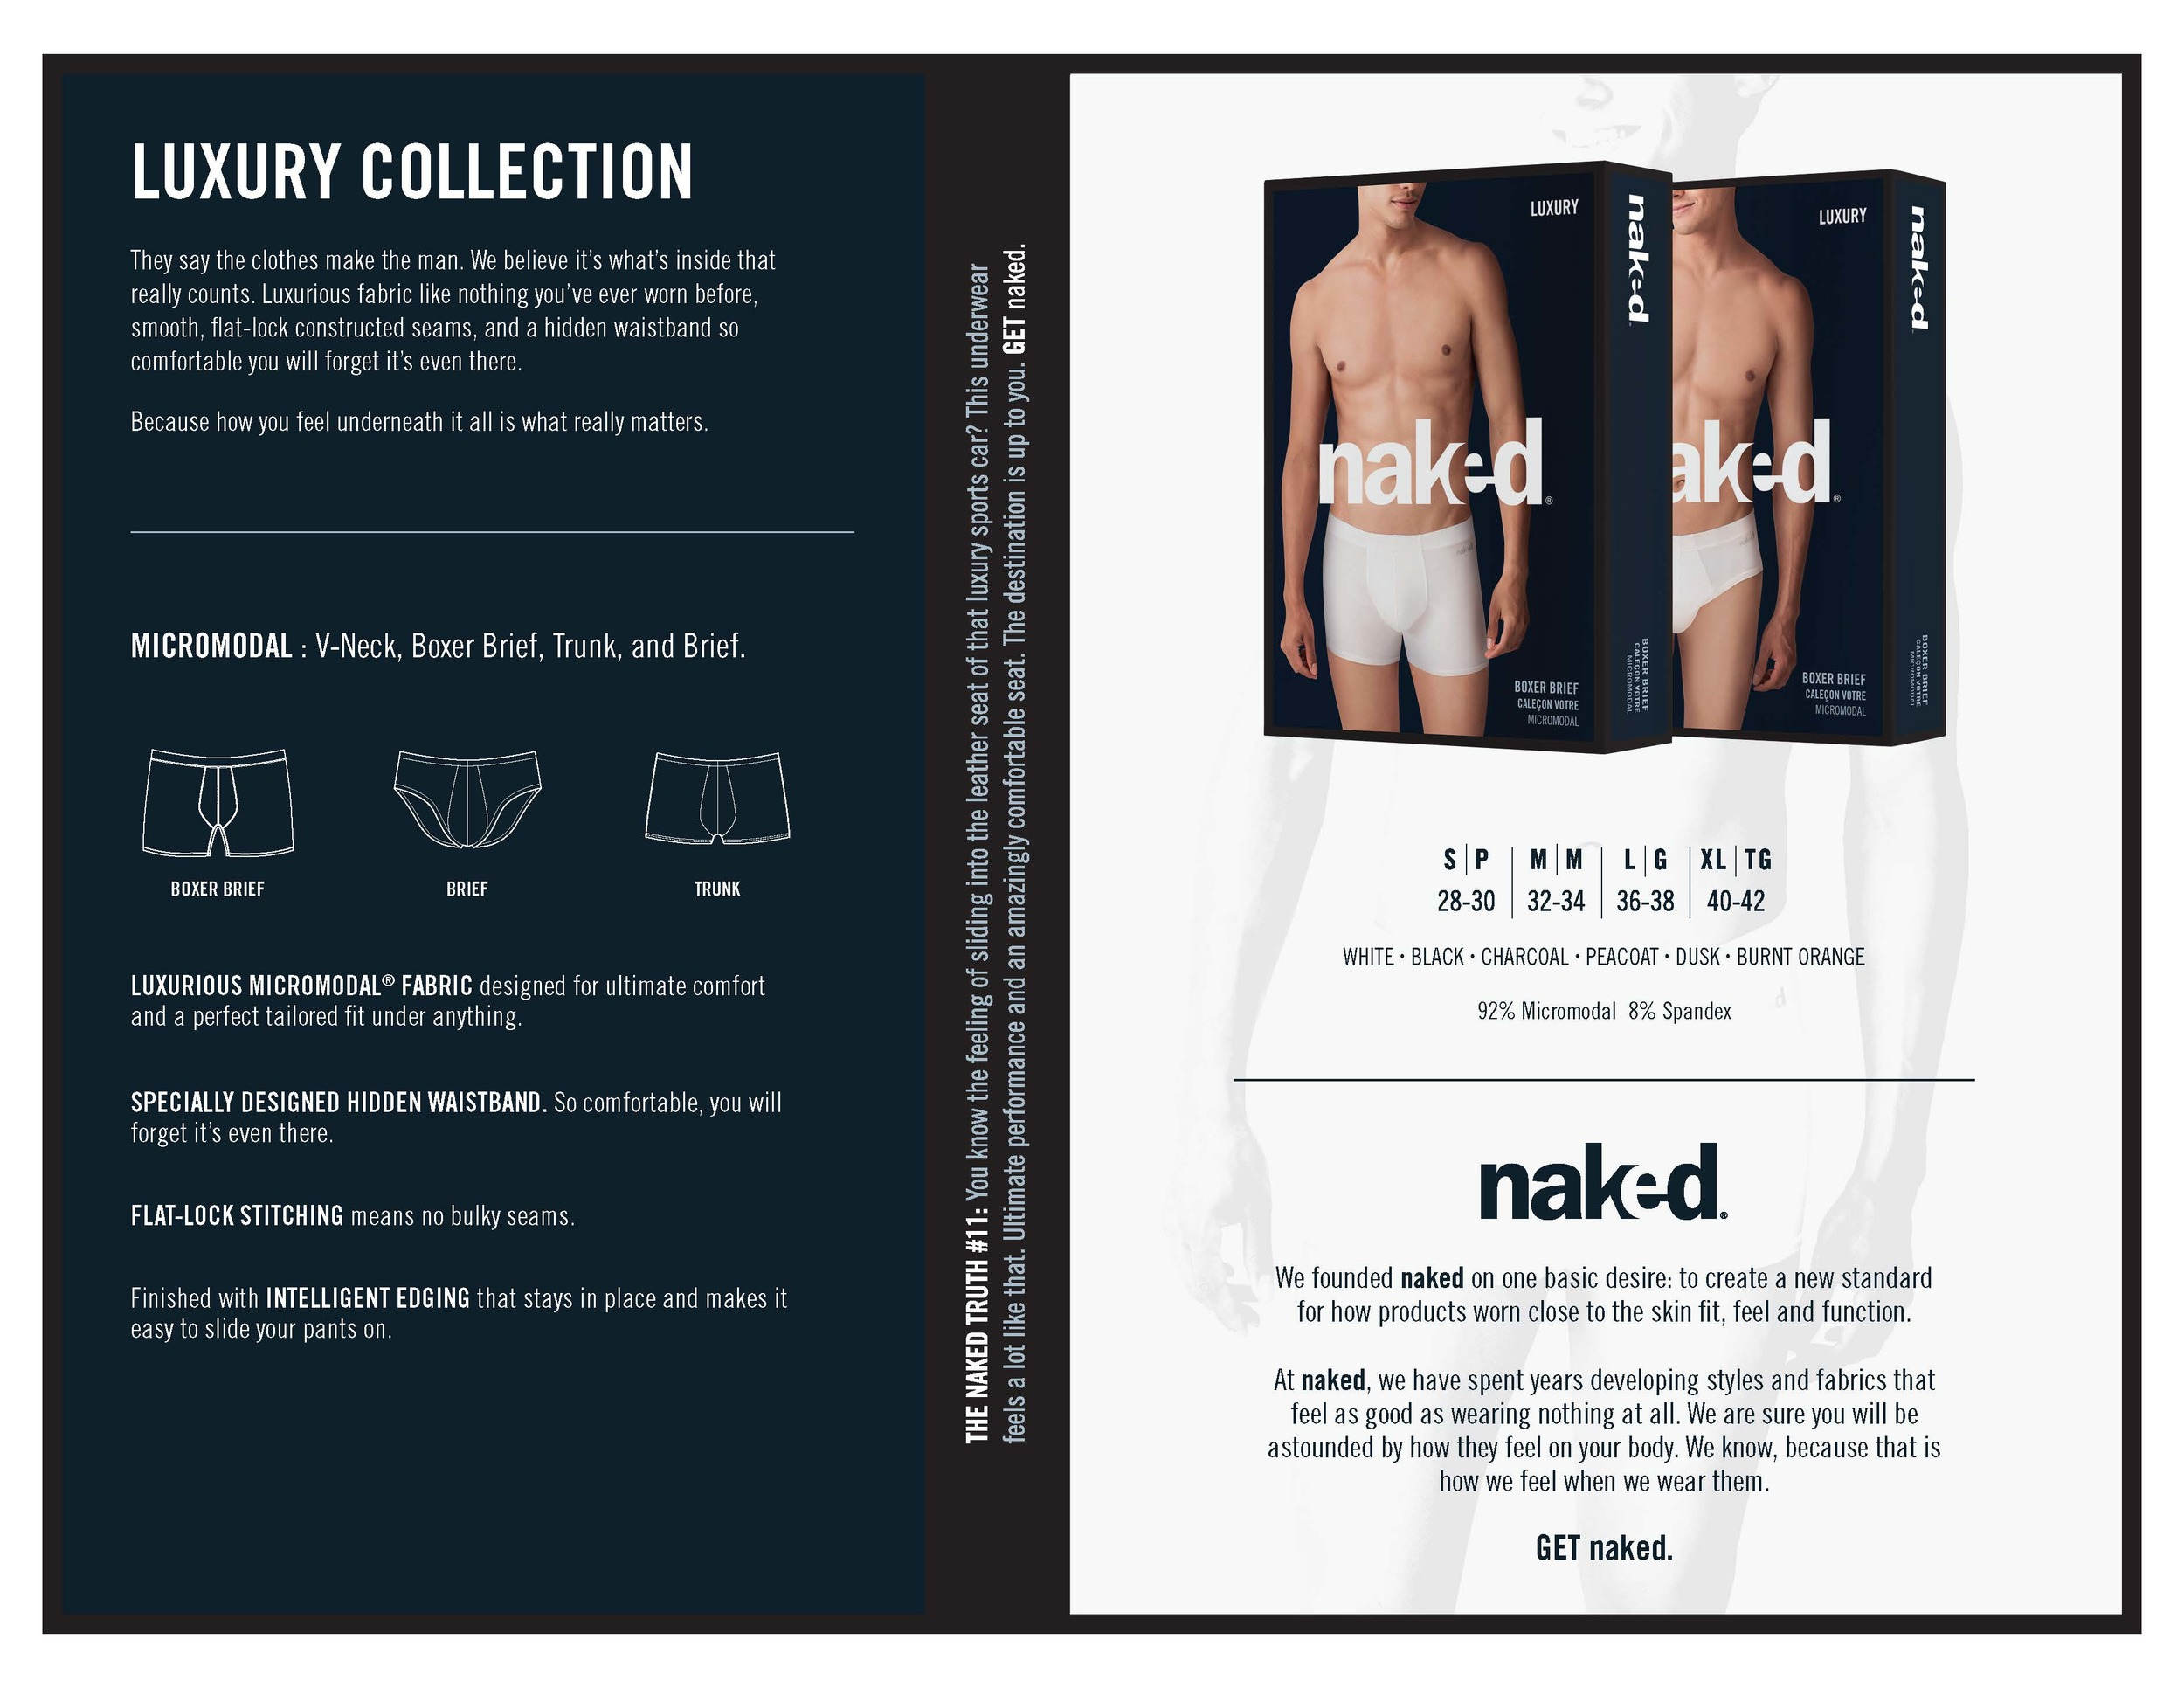 Naked_Nordstrom_PK Sheets_Page_6.jpg